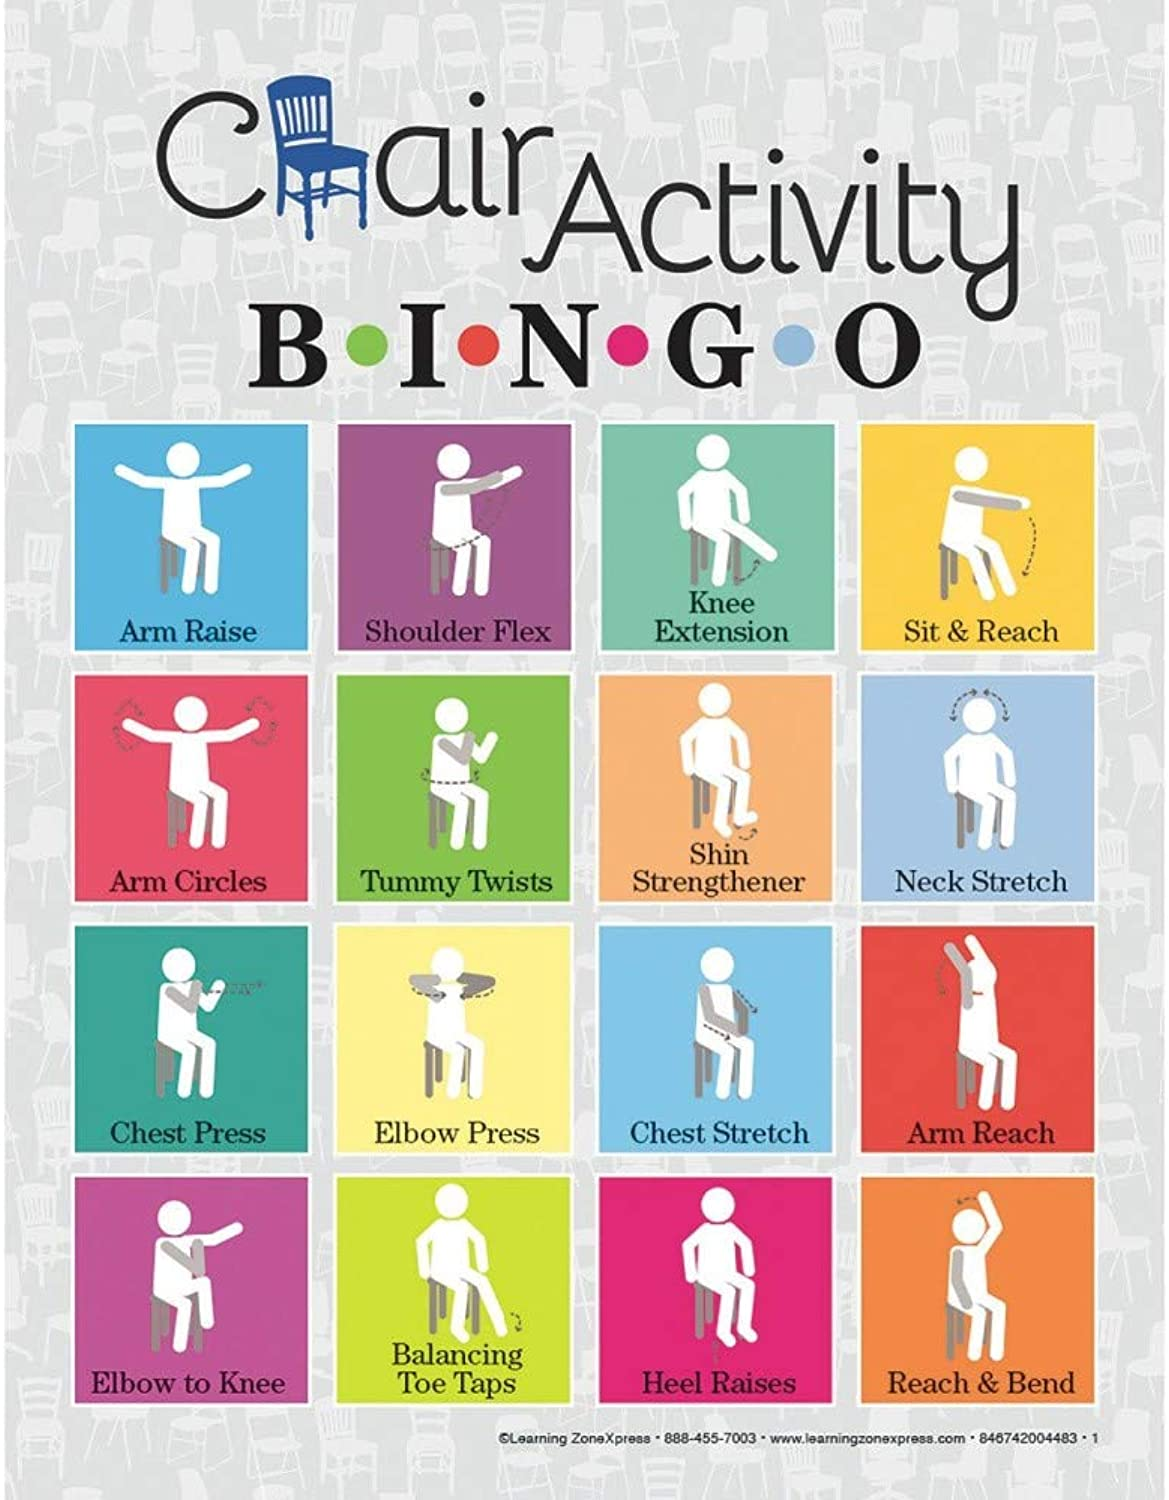 Learning Zone Express Chair Activity Bingo